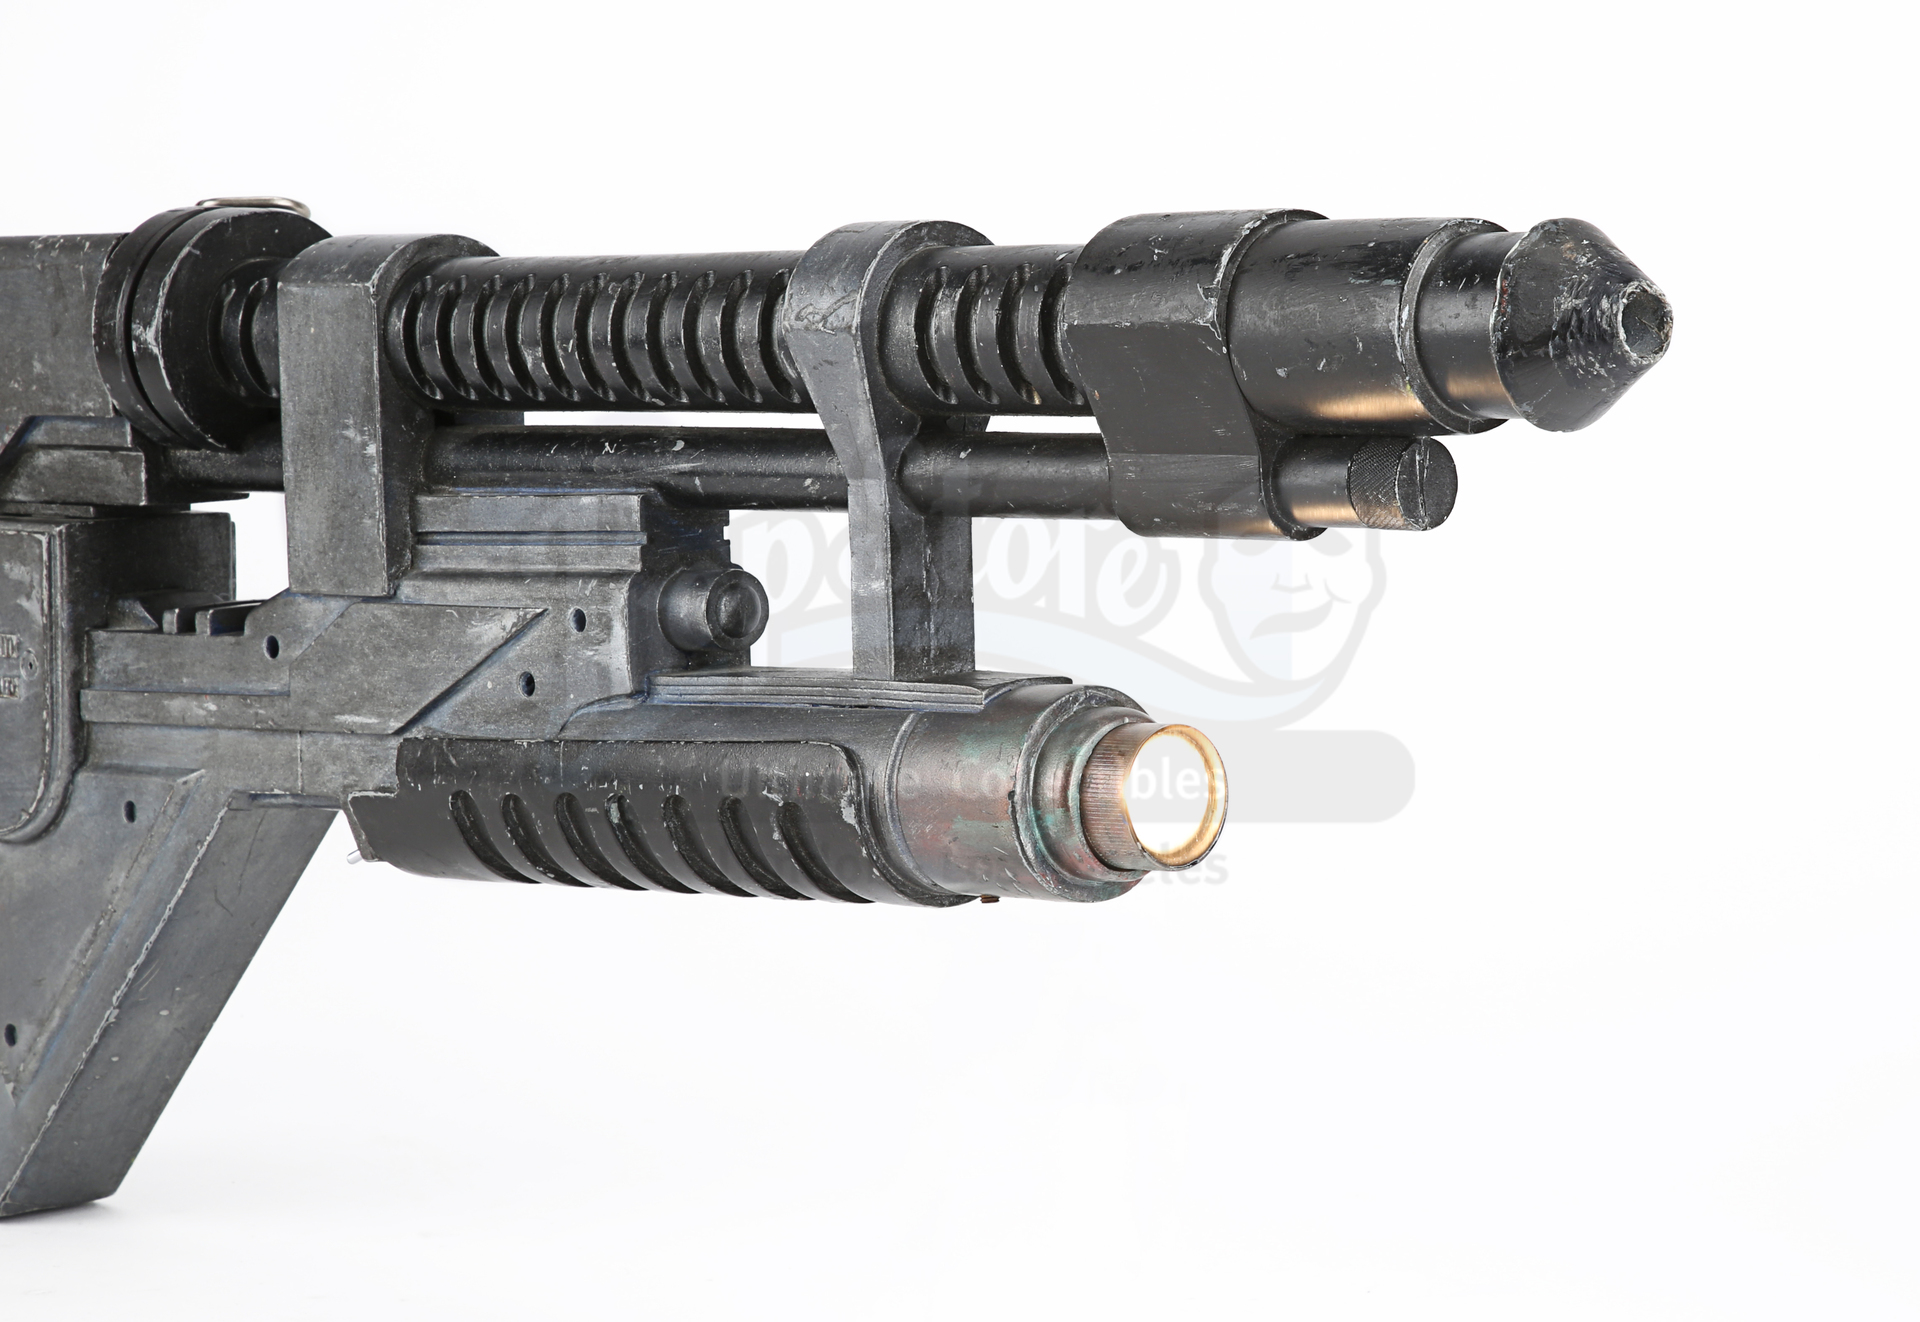 ALIEN RESURRECTION (1997) - Light-Up AR-2 Rifle - Image 9 of 19